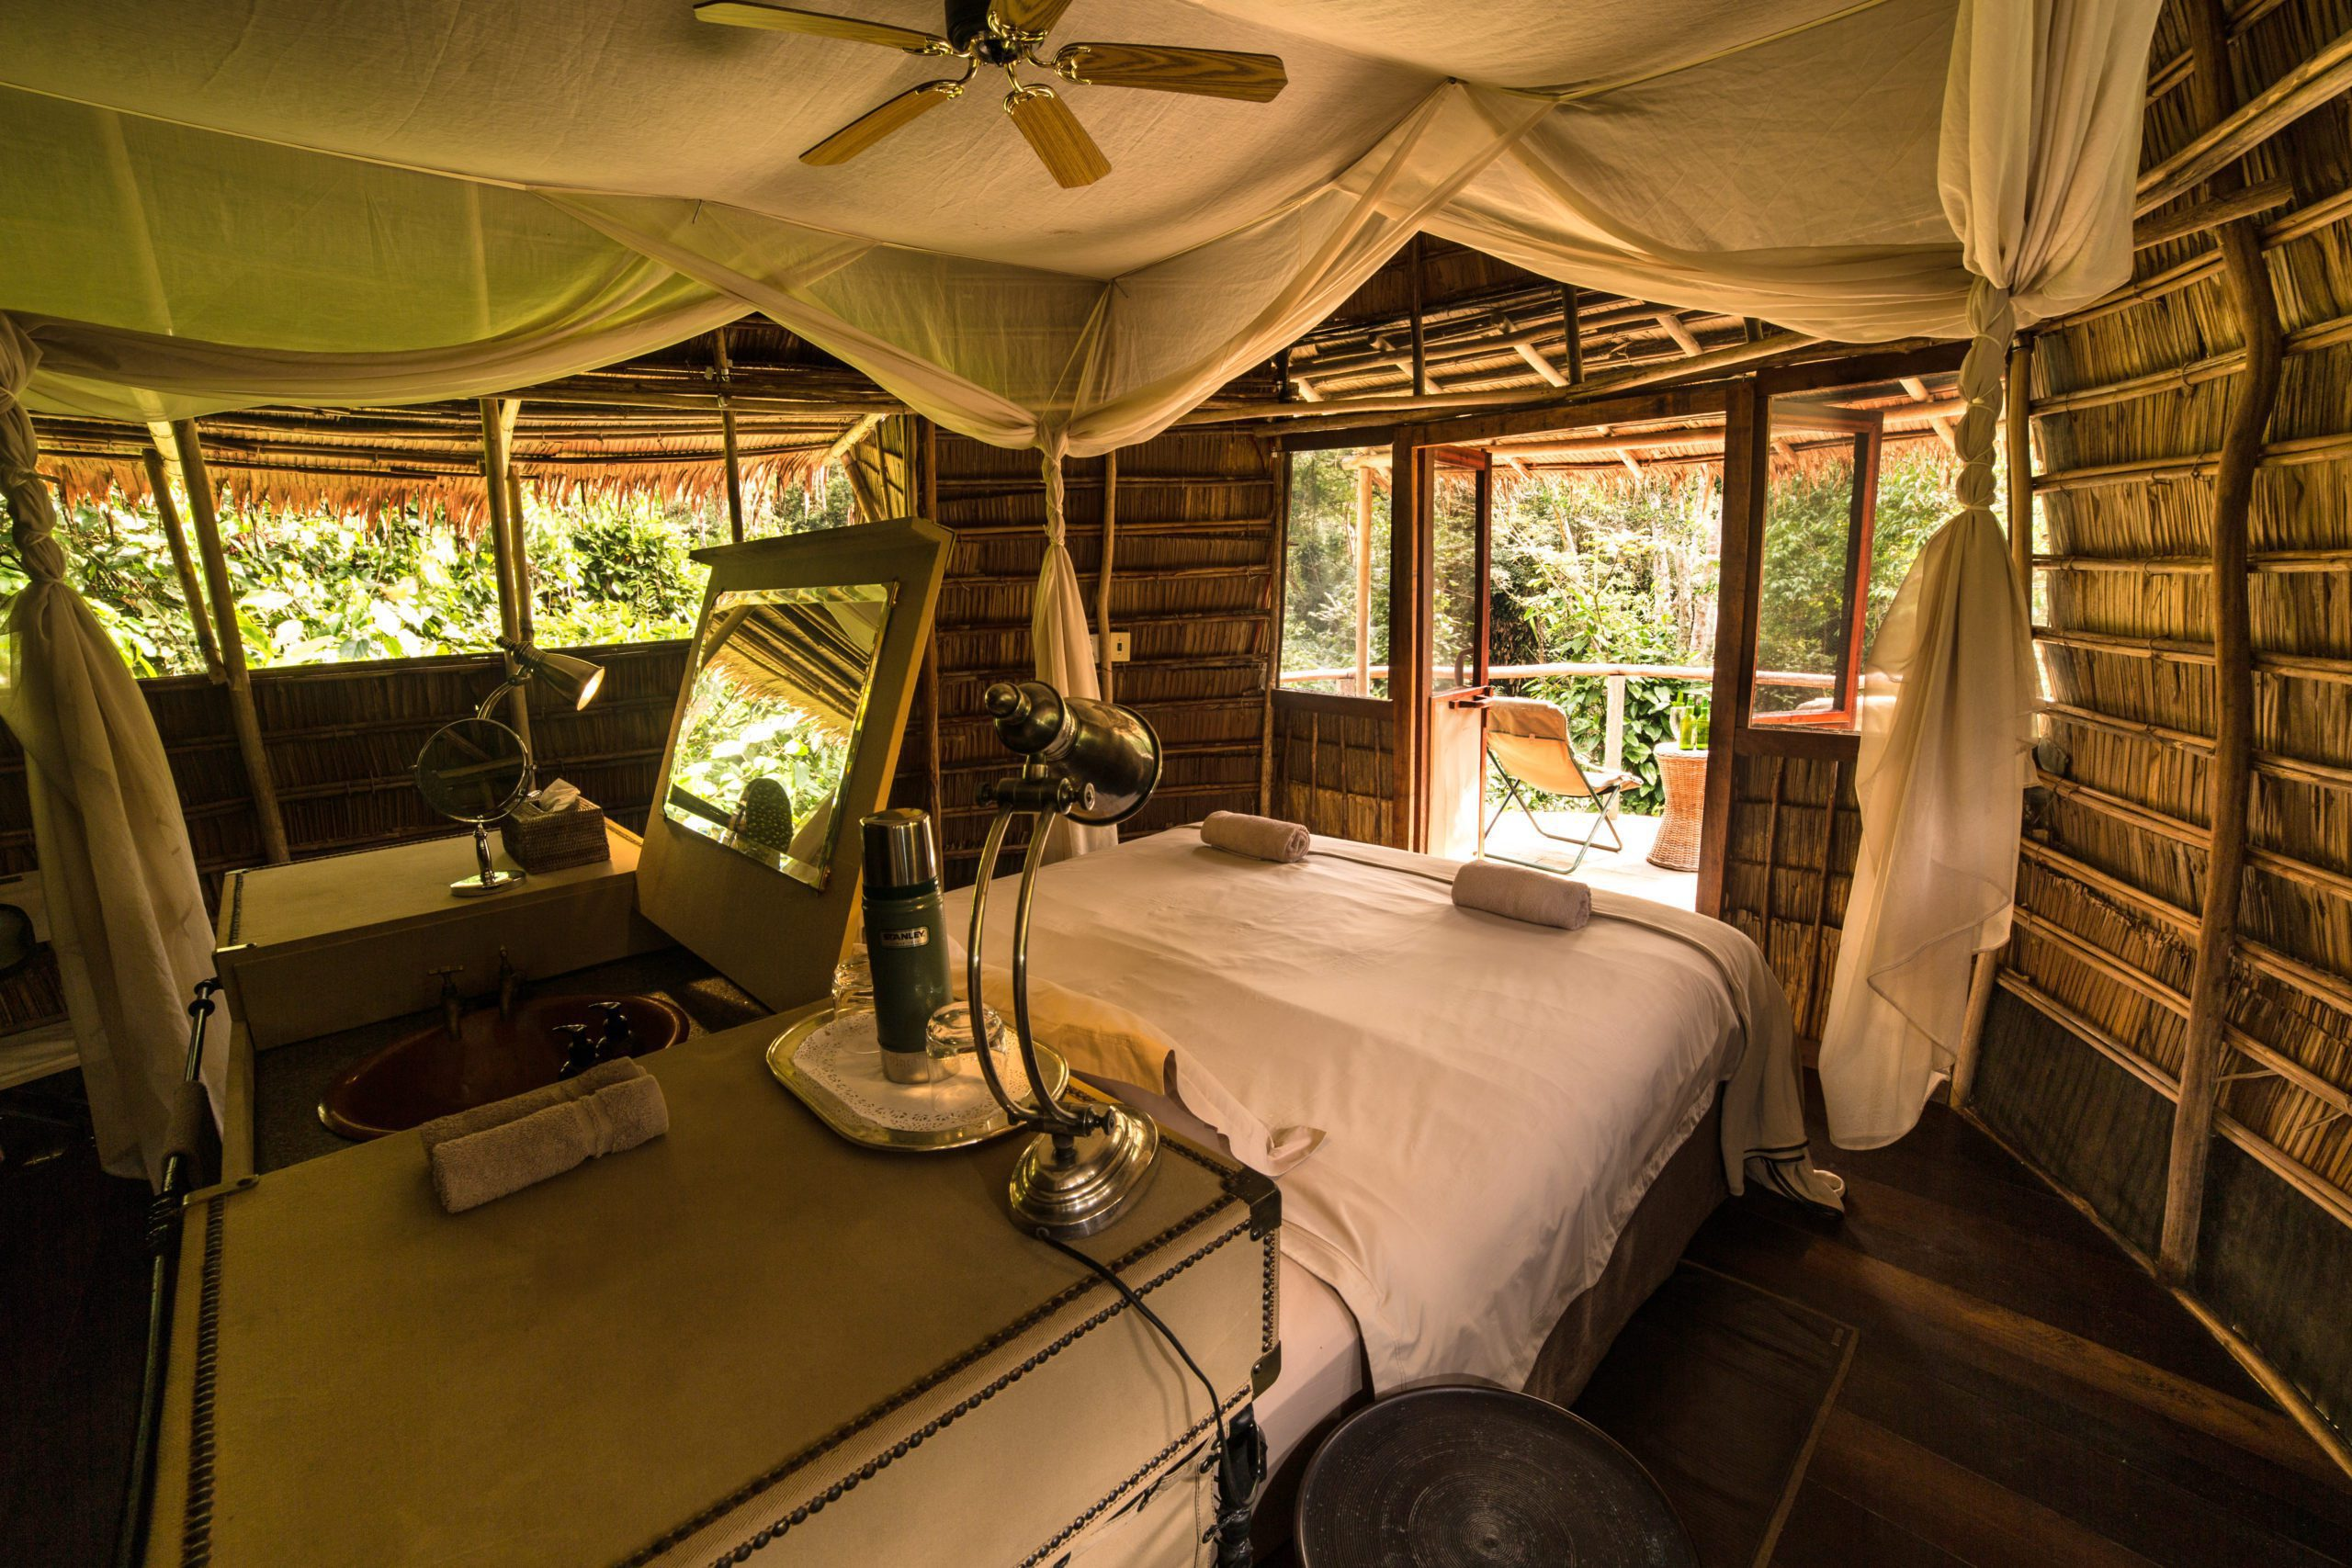 Congo Basin safari Ngaga Camp interior view of room